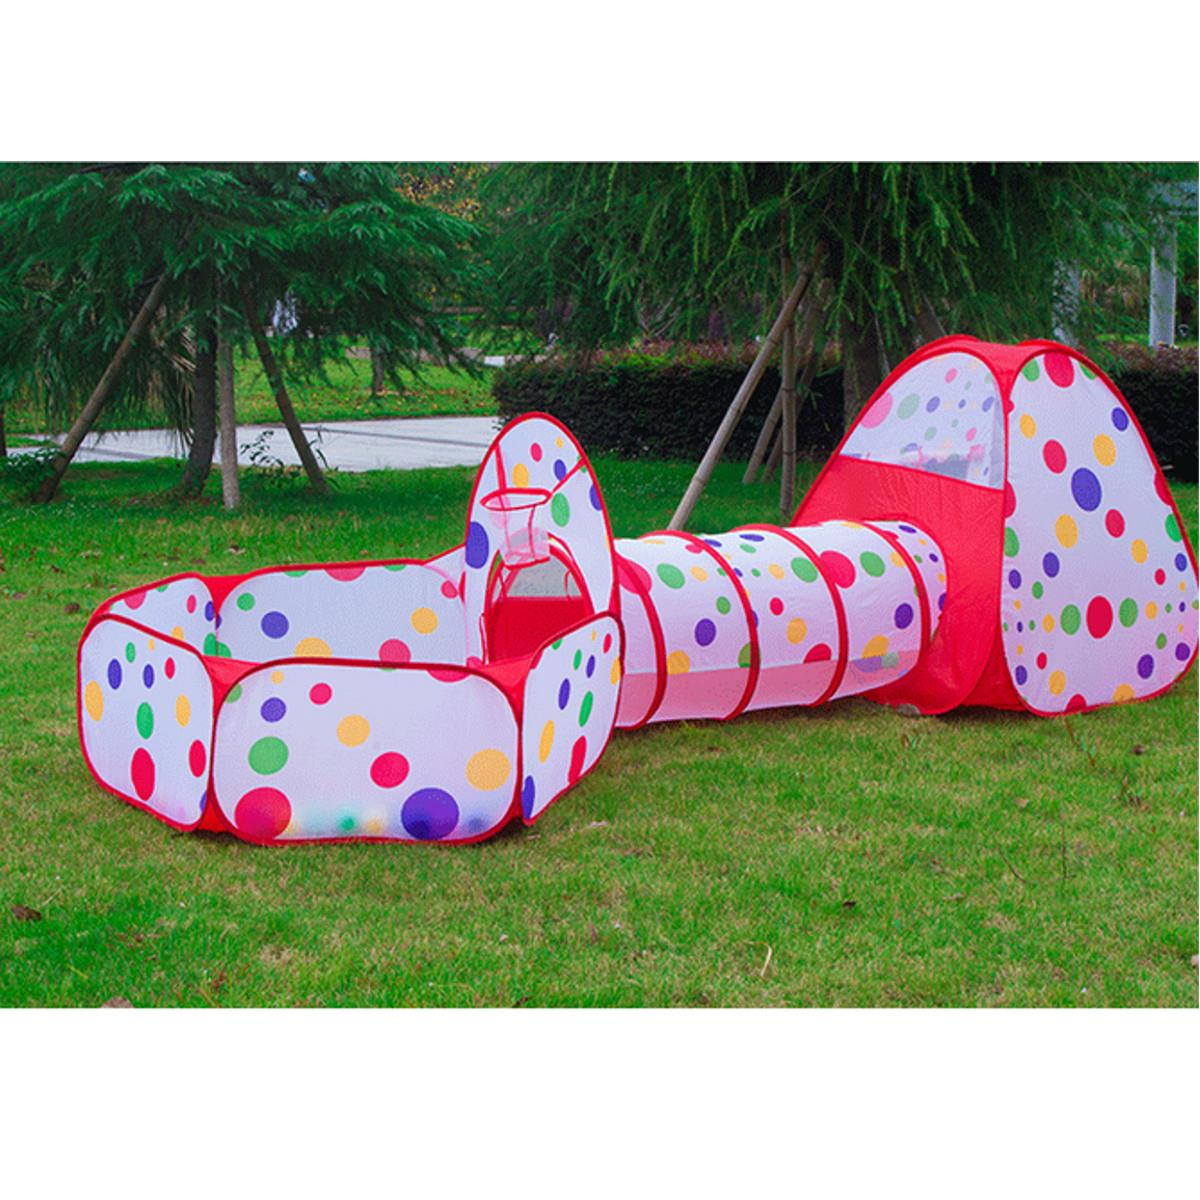 3pcs/set Foldable <font><b>Kids</b></font> Toddler Tunnel Pop Up Play Tent Toys <font><b>For</b></font> Children Indoor Outdoor Playhouse <font><b>Kids</b></font> Play Gaming Toys